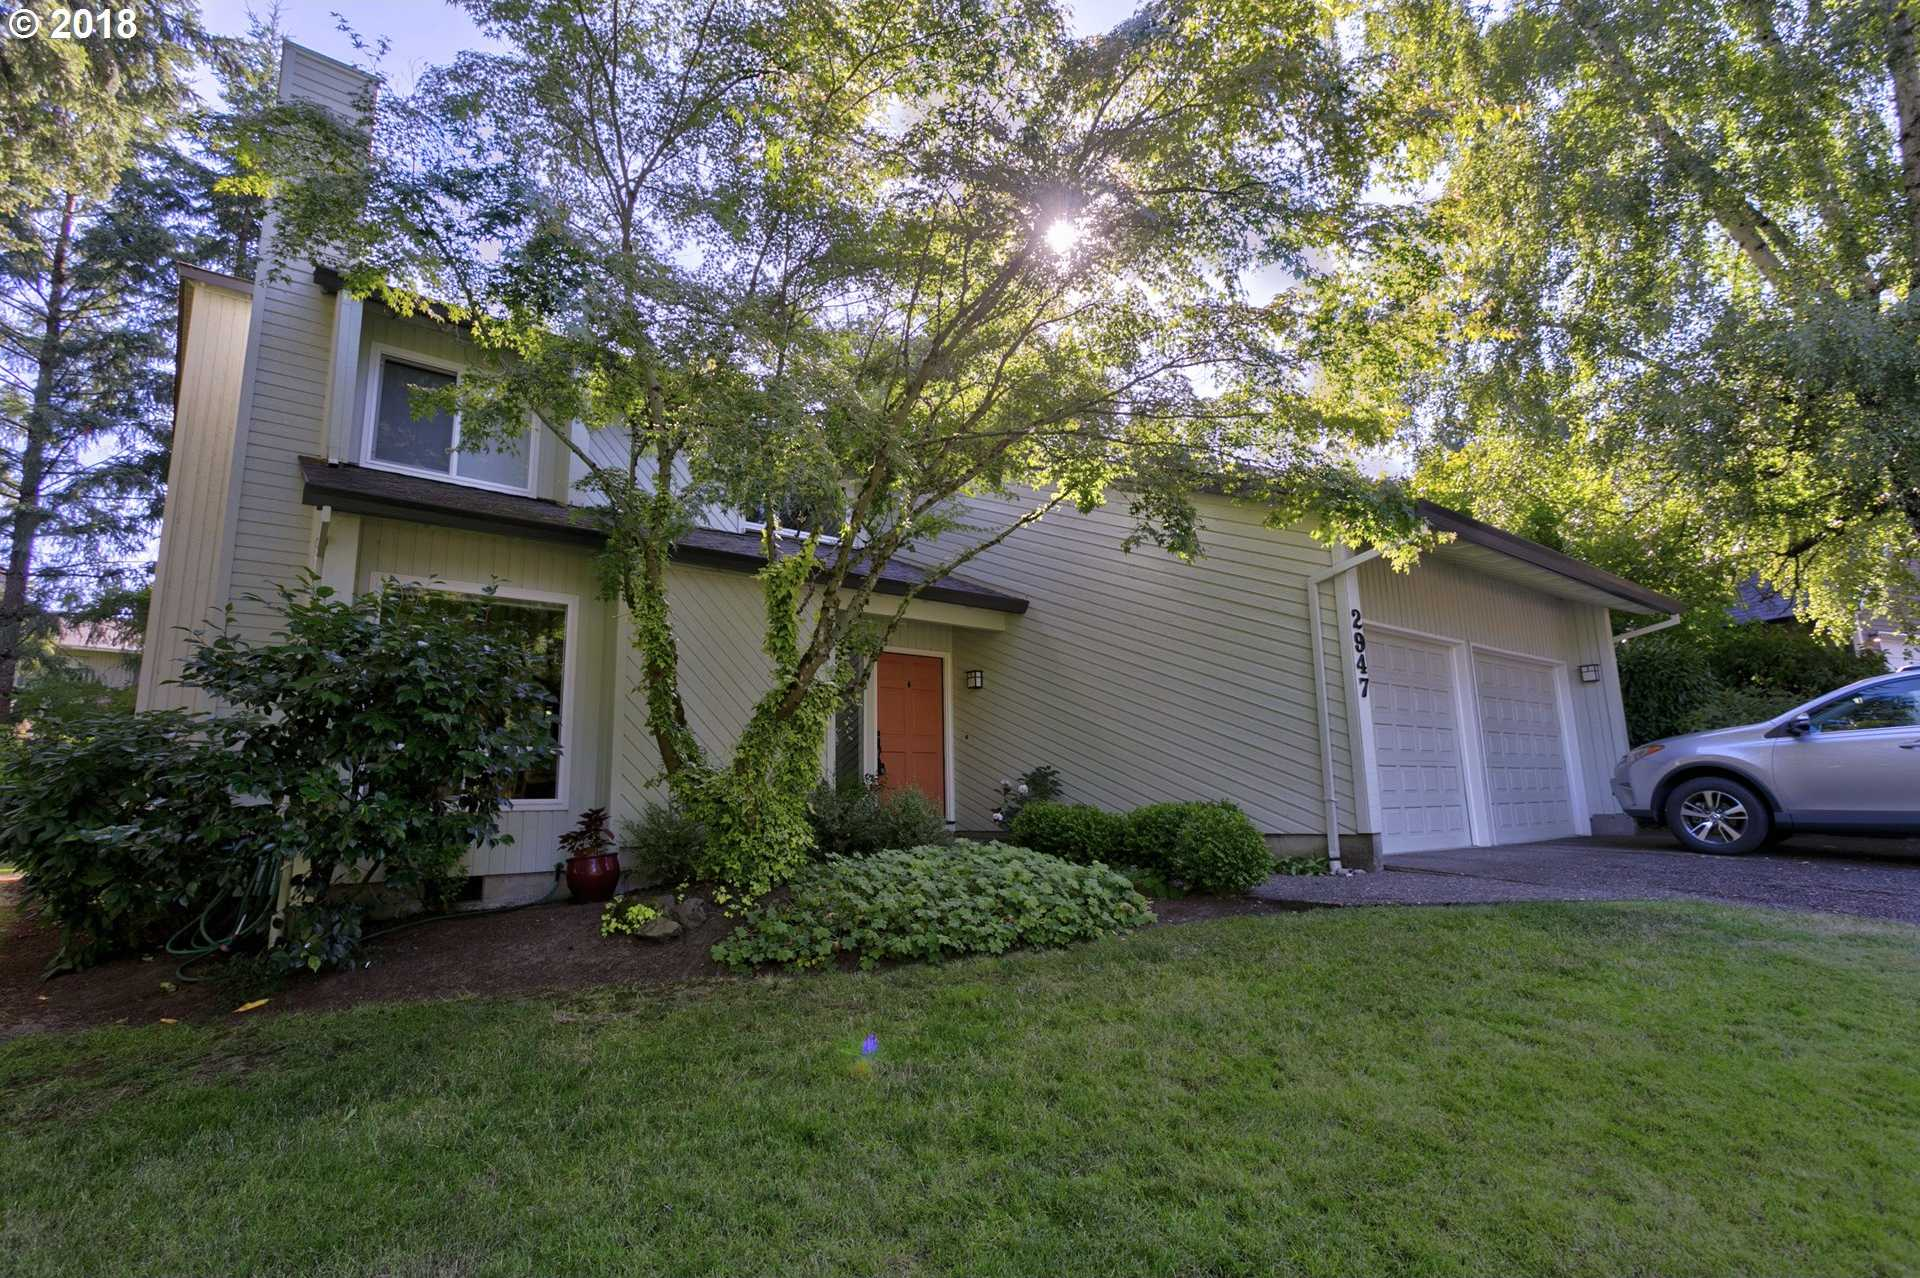 $524,900 - 4Br/3Ba -  for Sale in West Linn